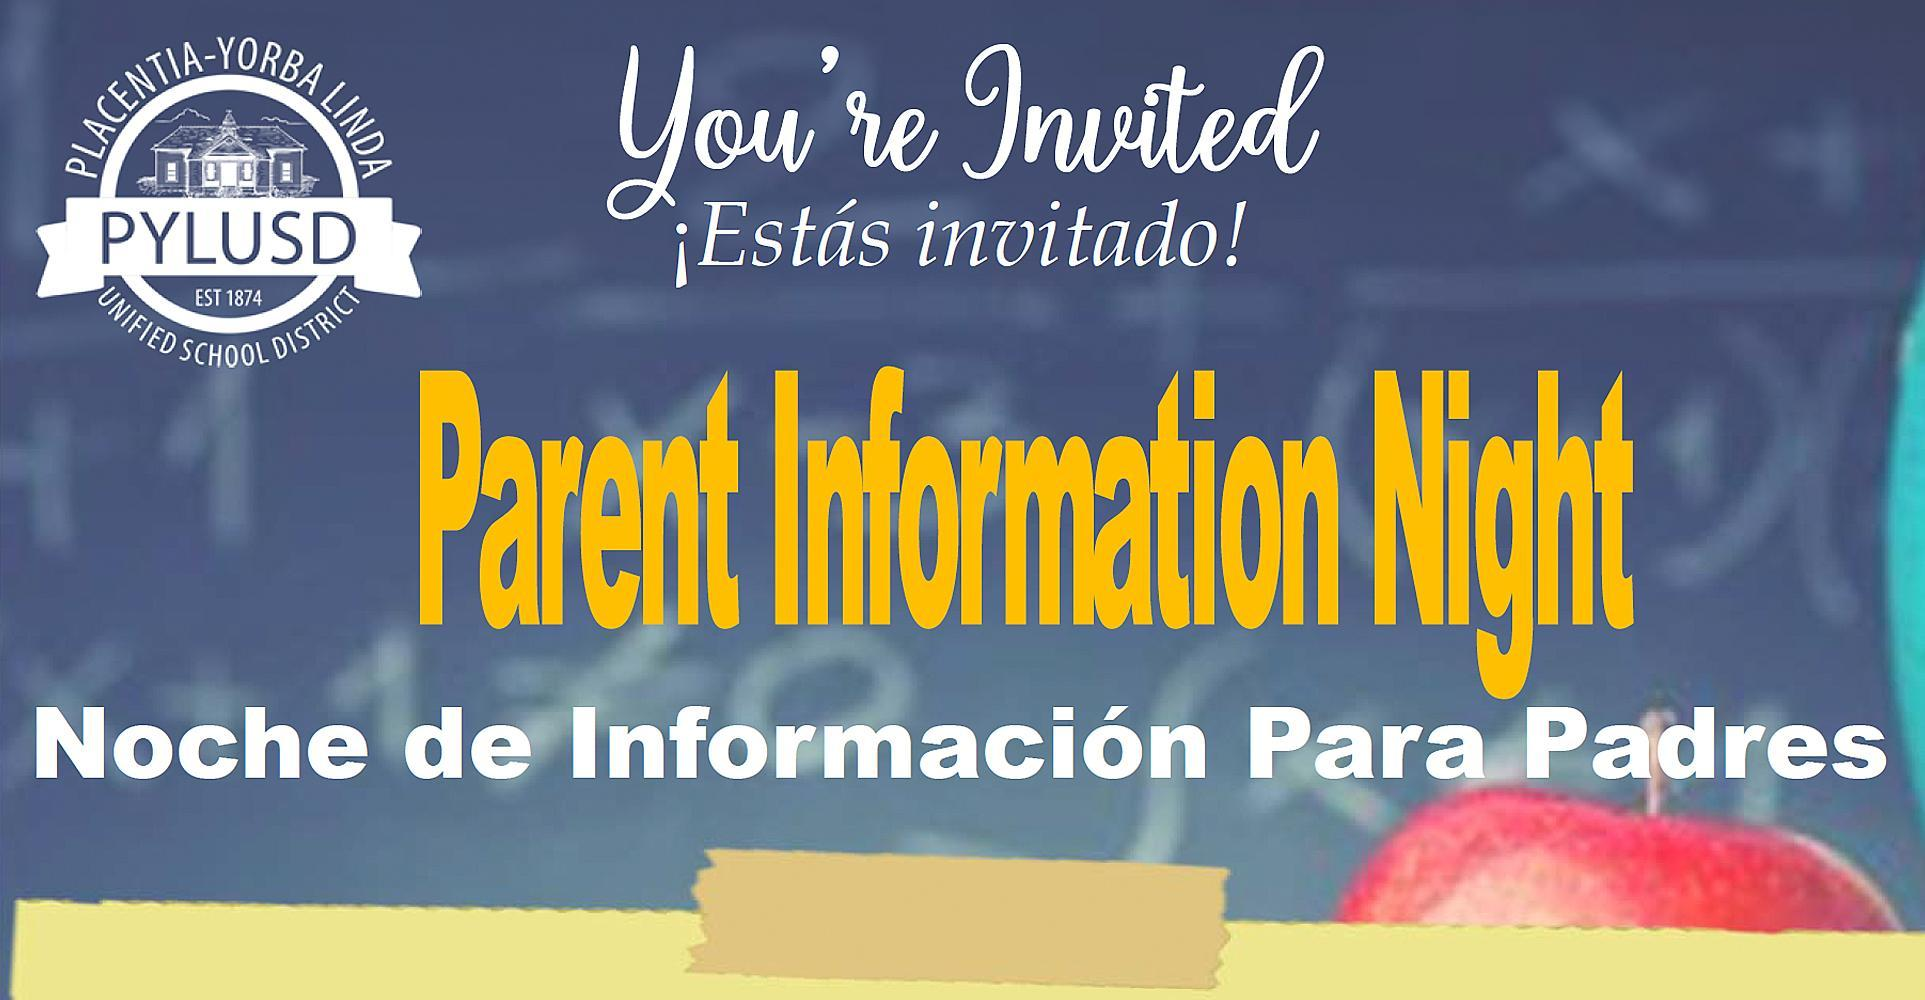 Title I Parent Information Night on January 20 at 6:00 PM